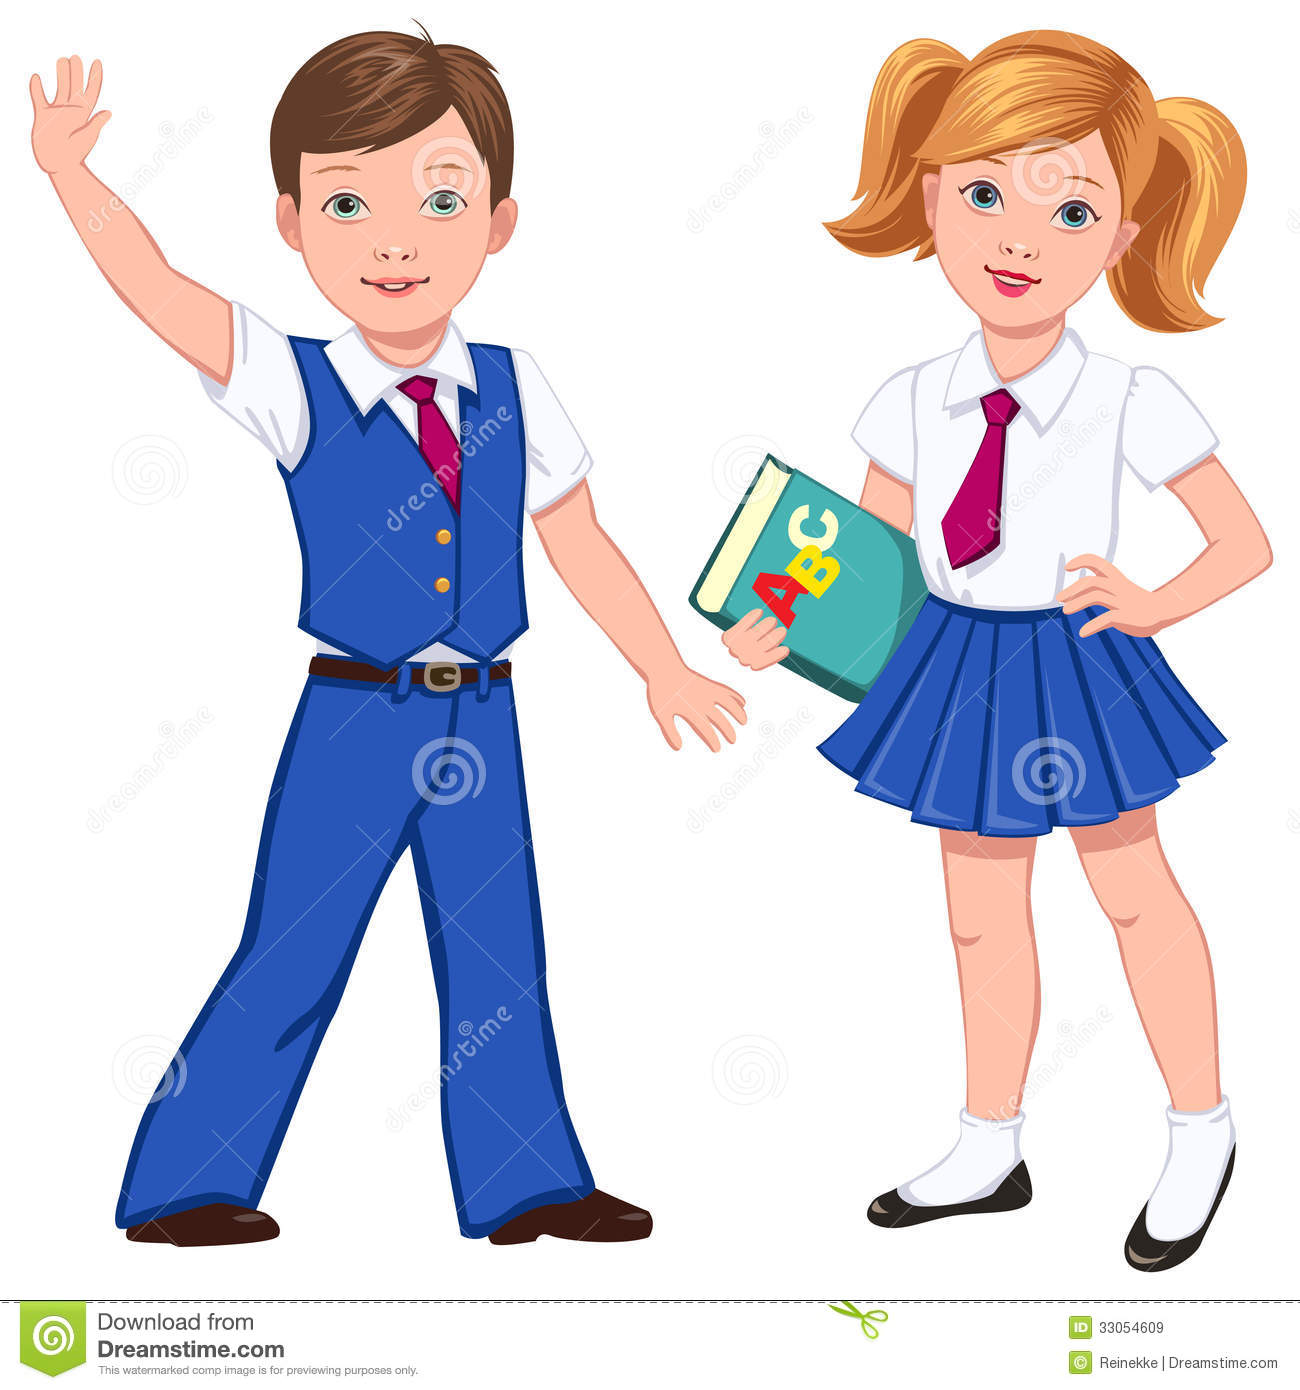 Pupils With Book Royalty Free Stock Imag-Pupils With Book Royalty Free Stock Images Image 33054609-12